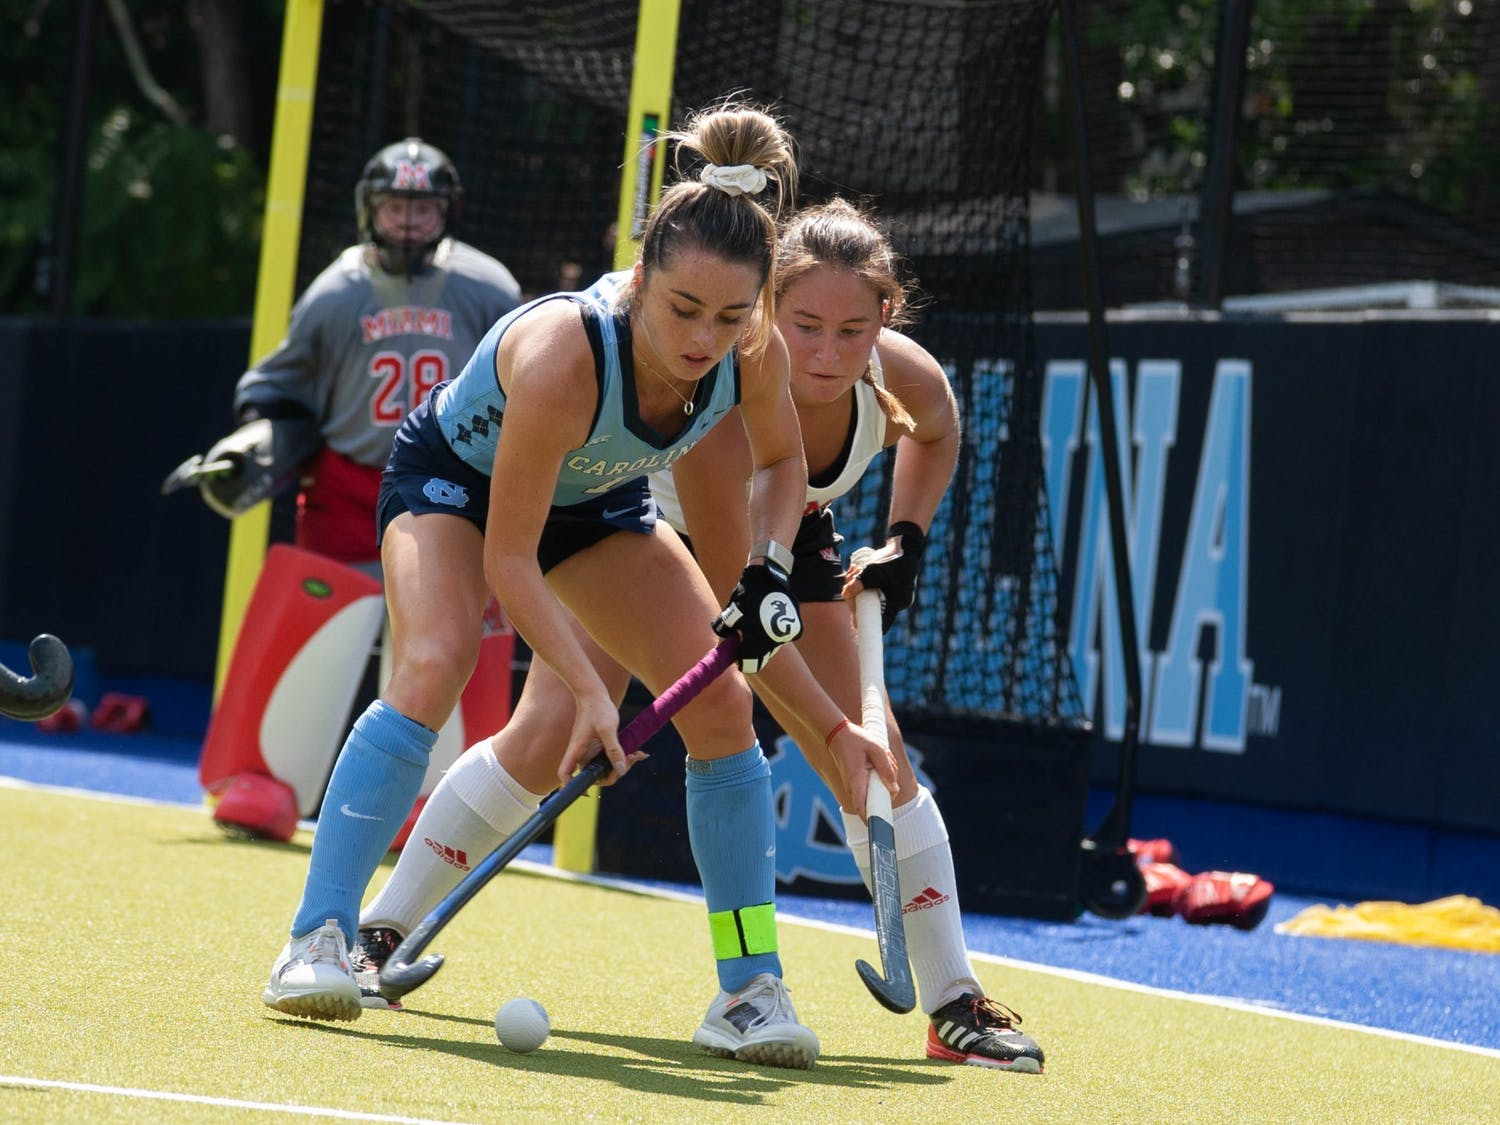 UNC senior forward Erin Matson (1) dribbles in the ball during the field hockey game against the Miami Redhawks at Karen Shelton Stadium on Sept.19, 2021. The Tar Heels defeated the Redhawks 7-2.